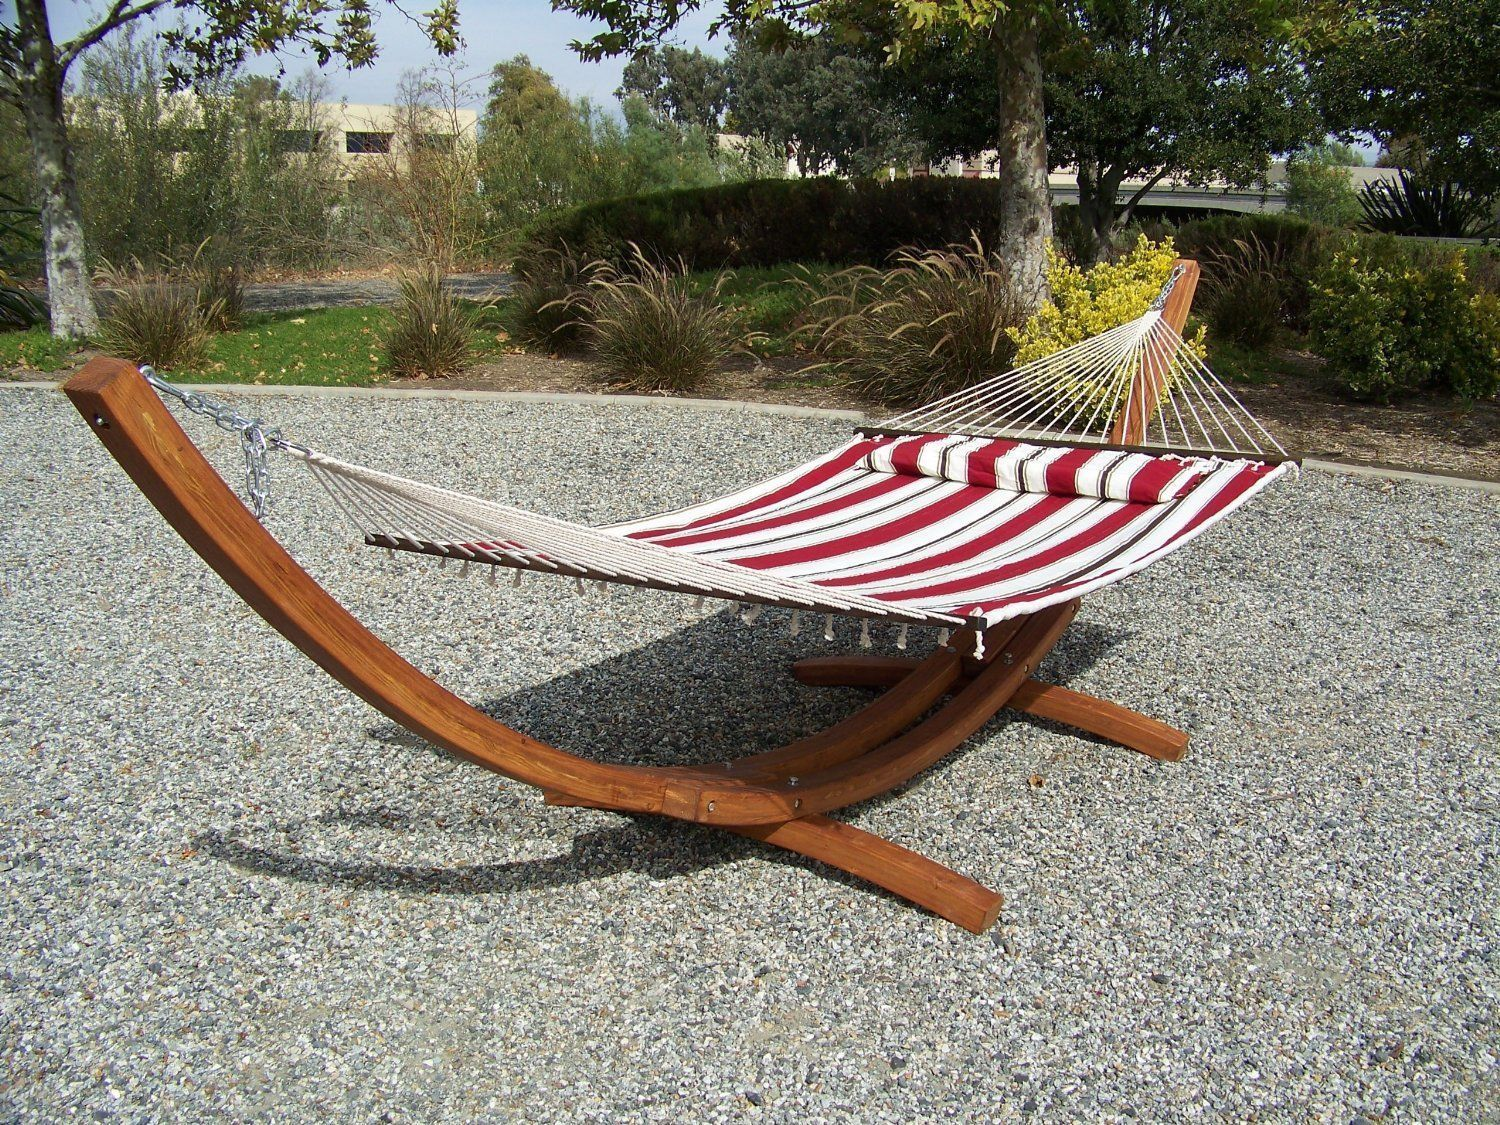 Petra Leisure 14 Ft. Teak Wooden Arc Hammock Stand + Premium Quilted Spring Color, Double Padded Hammock Bed.... by Petra Sports & Leisure